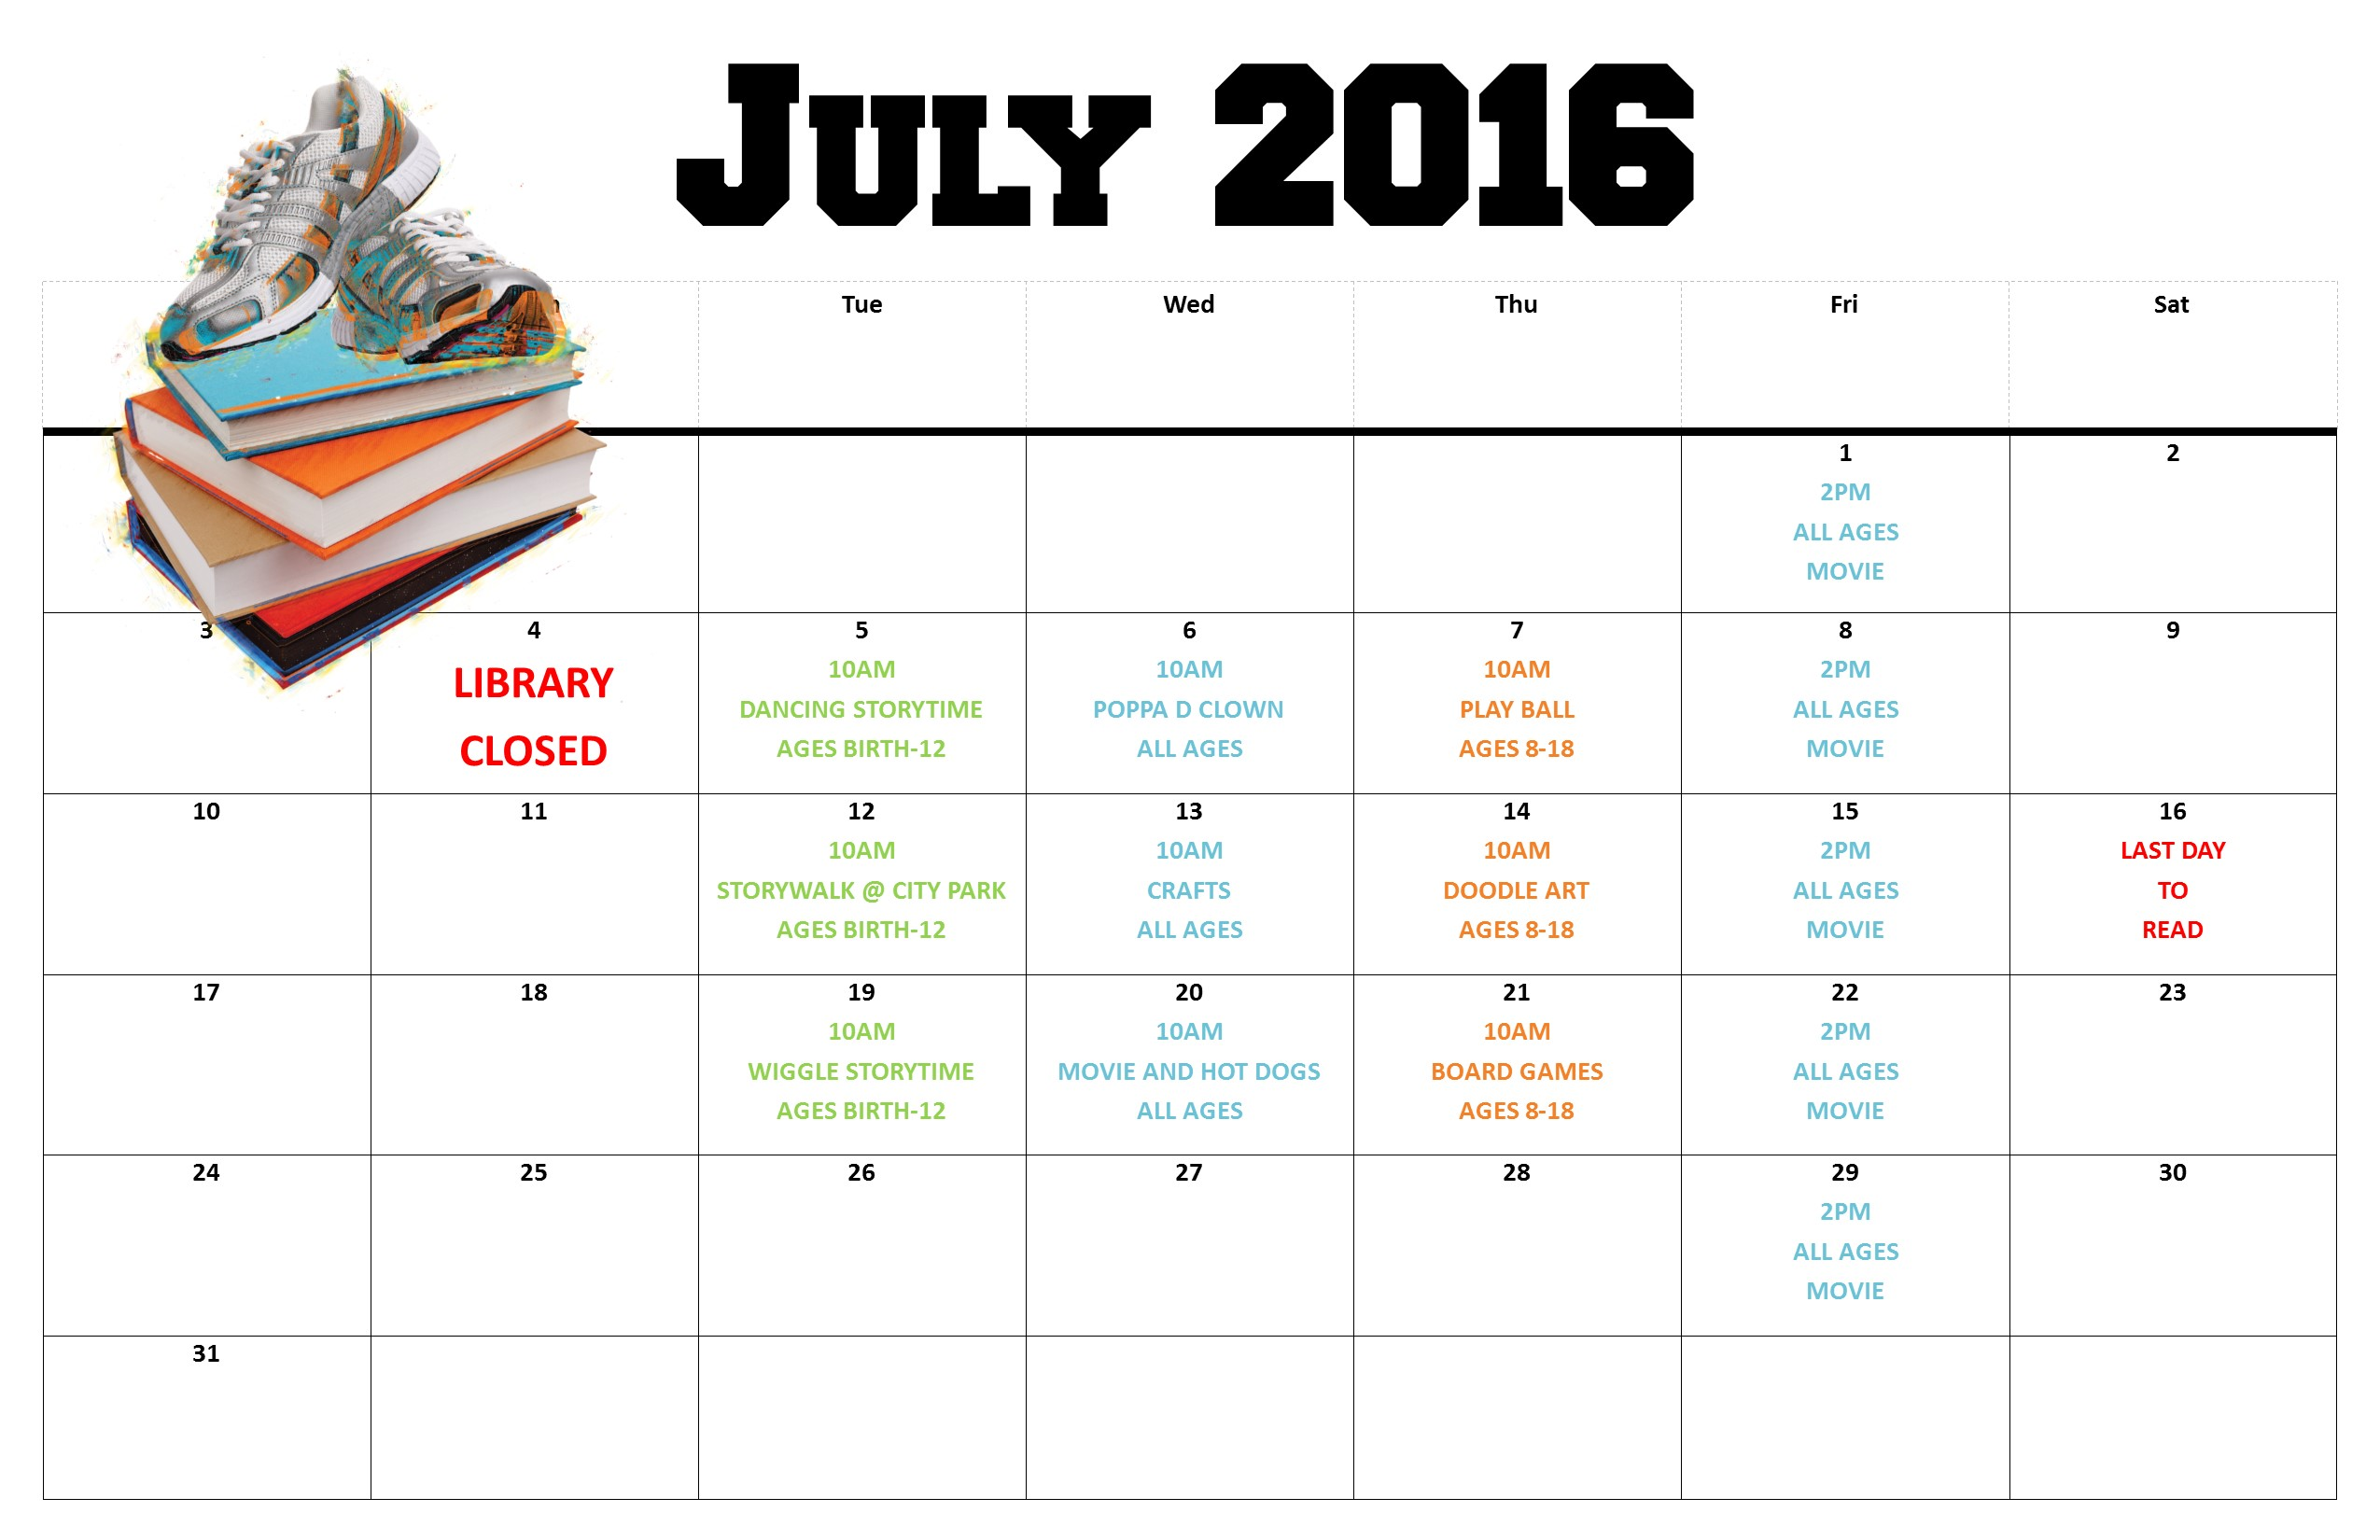 CALENDAR OF EVENTS - JULY 2016